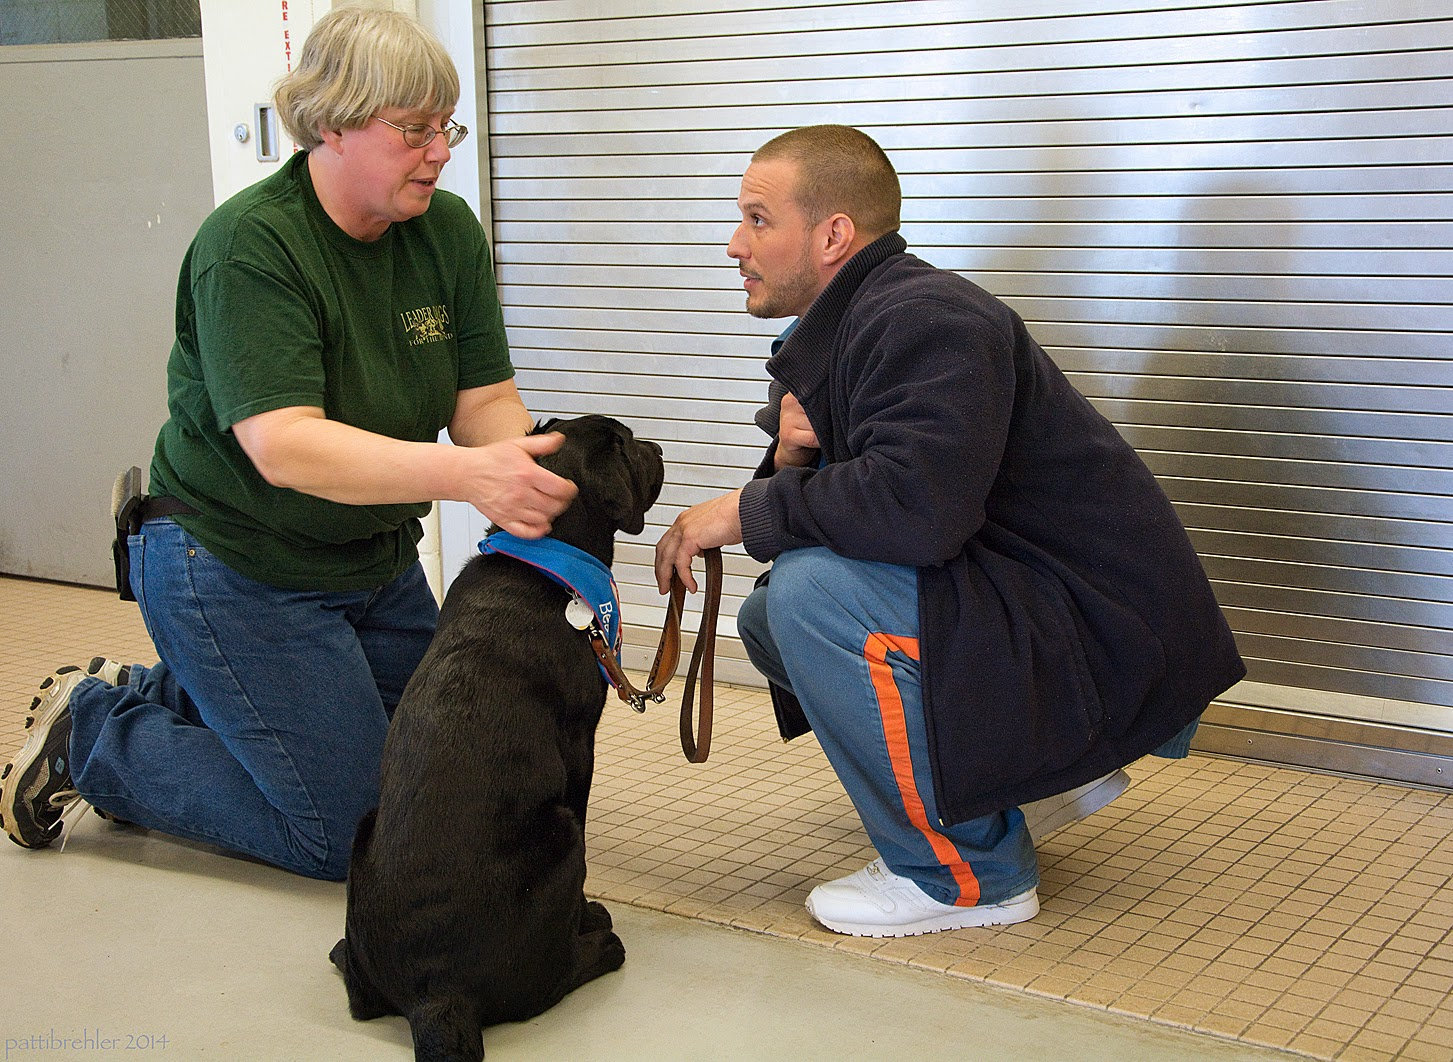 A woman dressed in a short sleeved green t-shirt and blue jeans wearing glasses and has short white hair is kneeling on the left. Her hands are checking the ears of a young black lab puppy, who is sitting on the cement floor facing away from the camera. A man is squatting to the right of the puppy. He is wearing a dark blue fleece jacket and the blue prison pants and white tennis shoes. He is holding the brown leather leash of the puppy with his left hand, which is leaning on his knee. He is looking at the woman and listening to her talk.